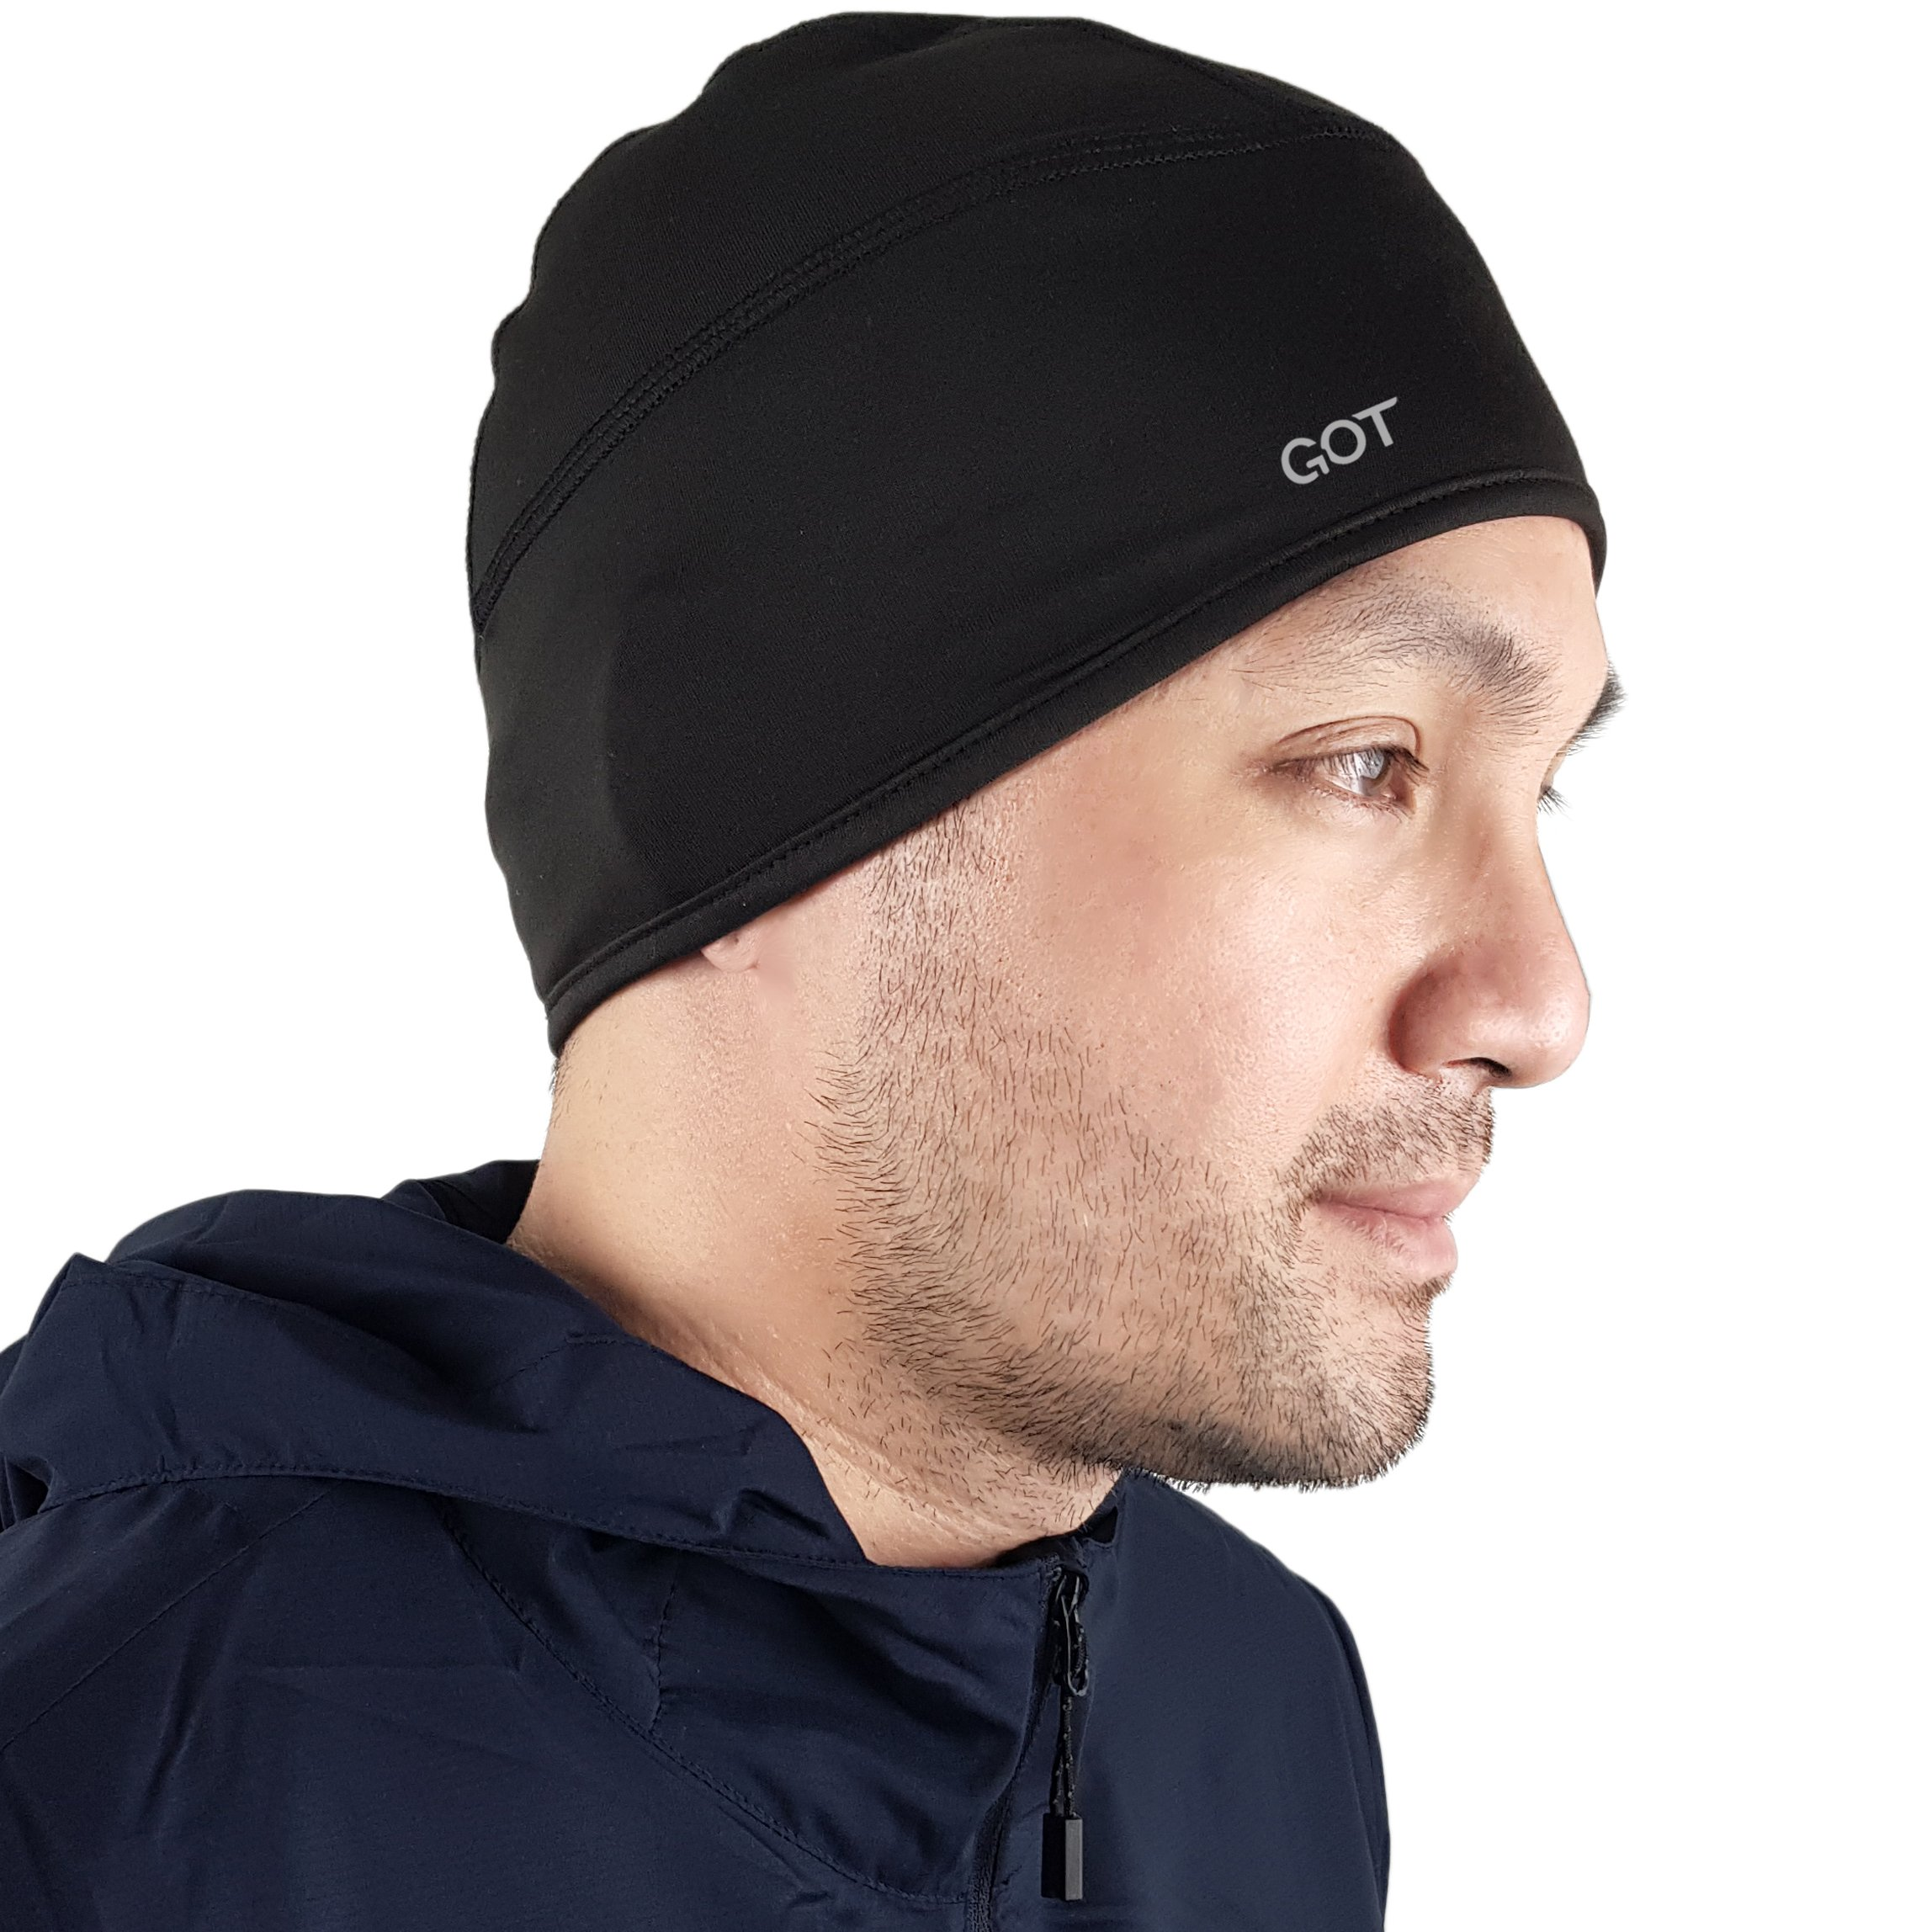 GOT Sports Skull Cap/Helmet Liner/Beanie for Running, Cycling, Motorcycle Riding, Skiing. Thermal Retention and Moisture Wicking Technology by GOT Sports